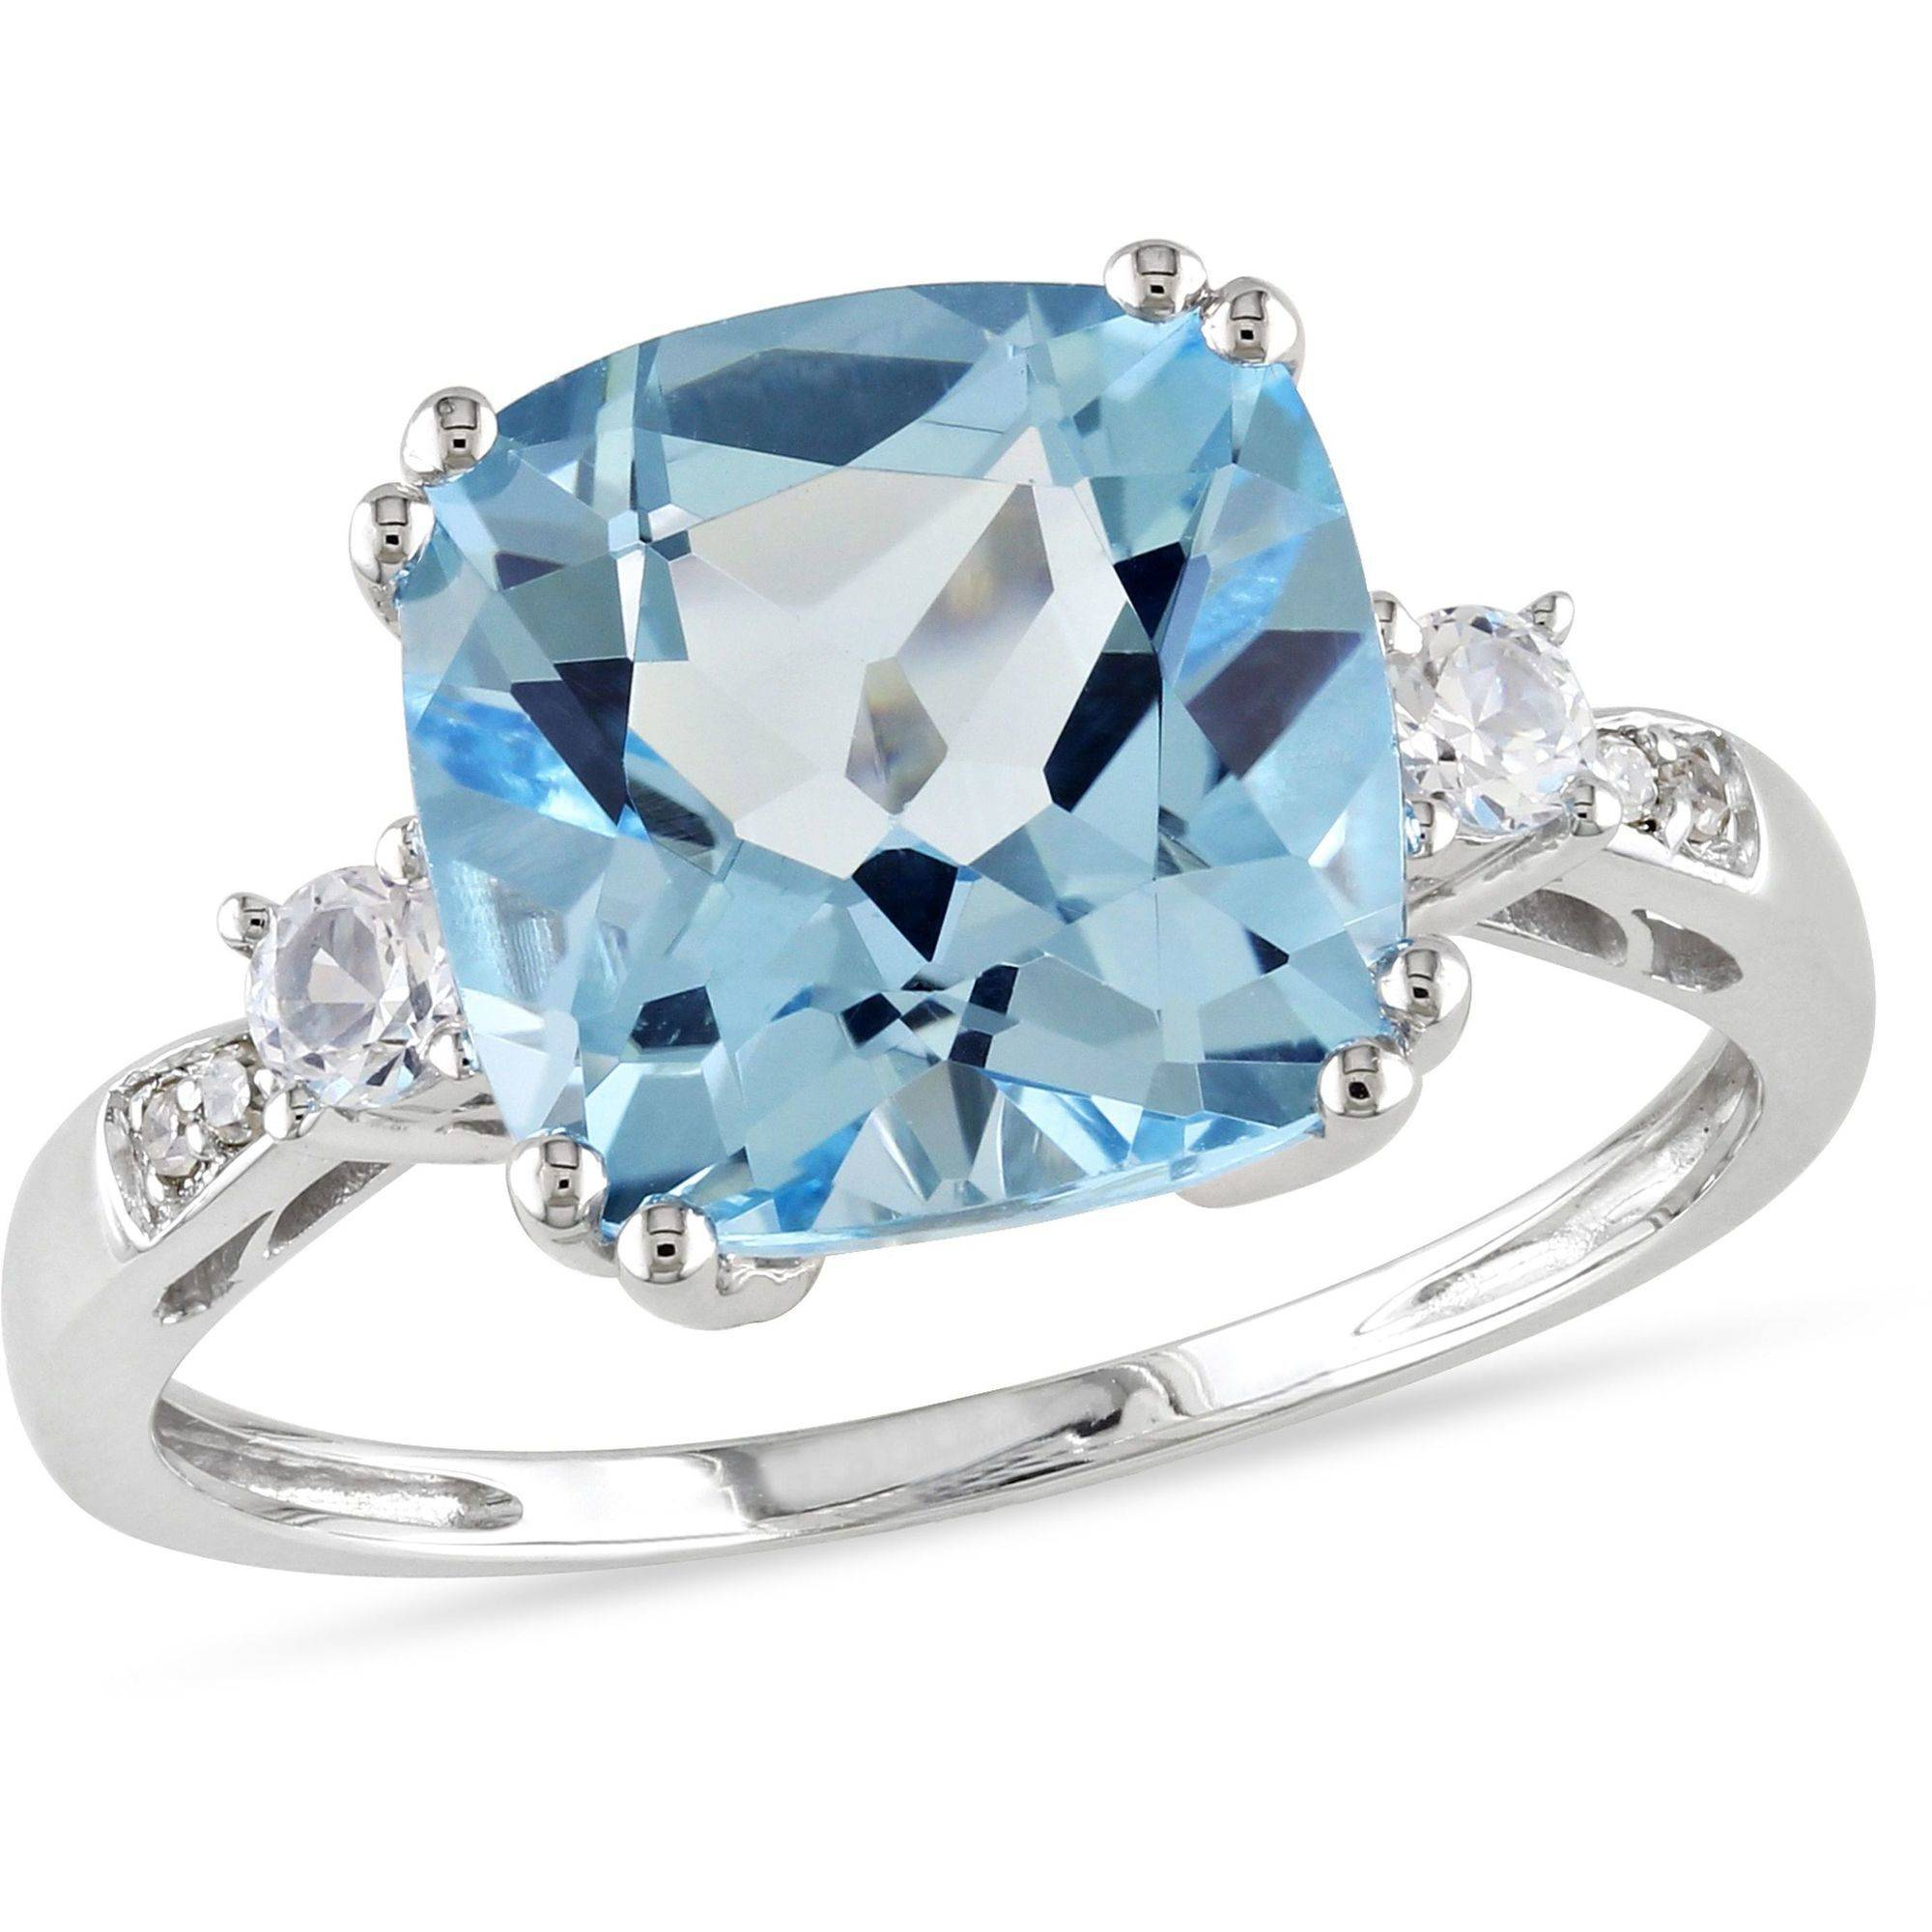 5-5/8 Carat T.G.W. Blue Topaz And Created White